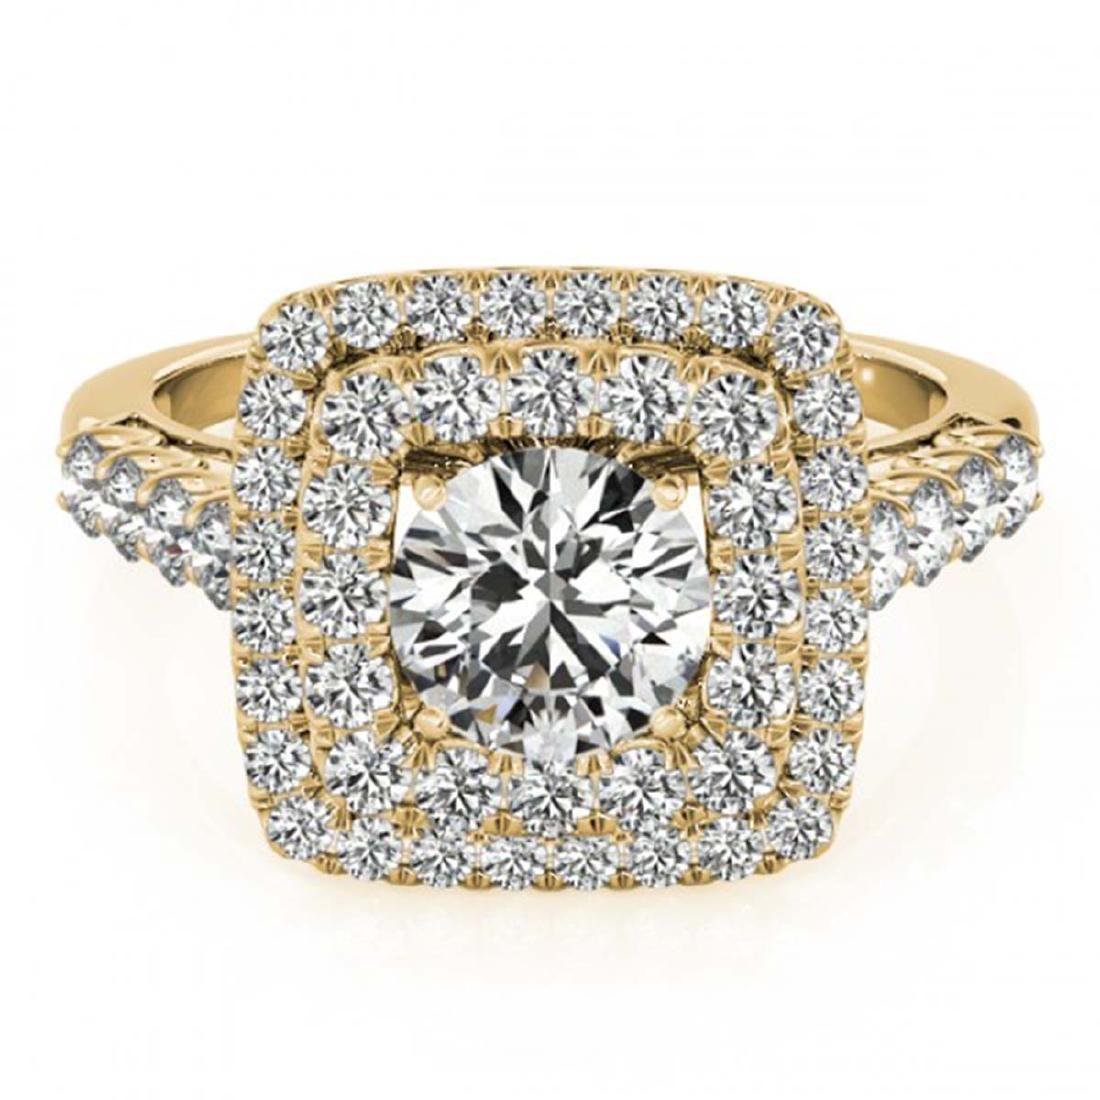 1.80 ctw VS/SI Diamond Halo Ring 18K Yellow Gold -